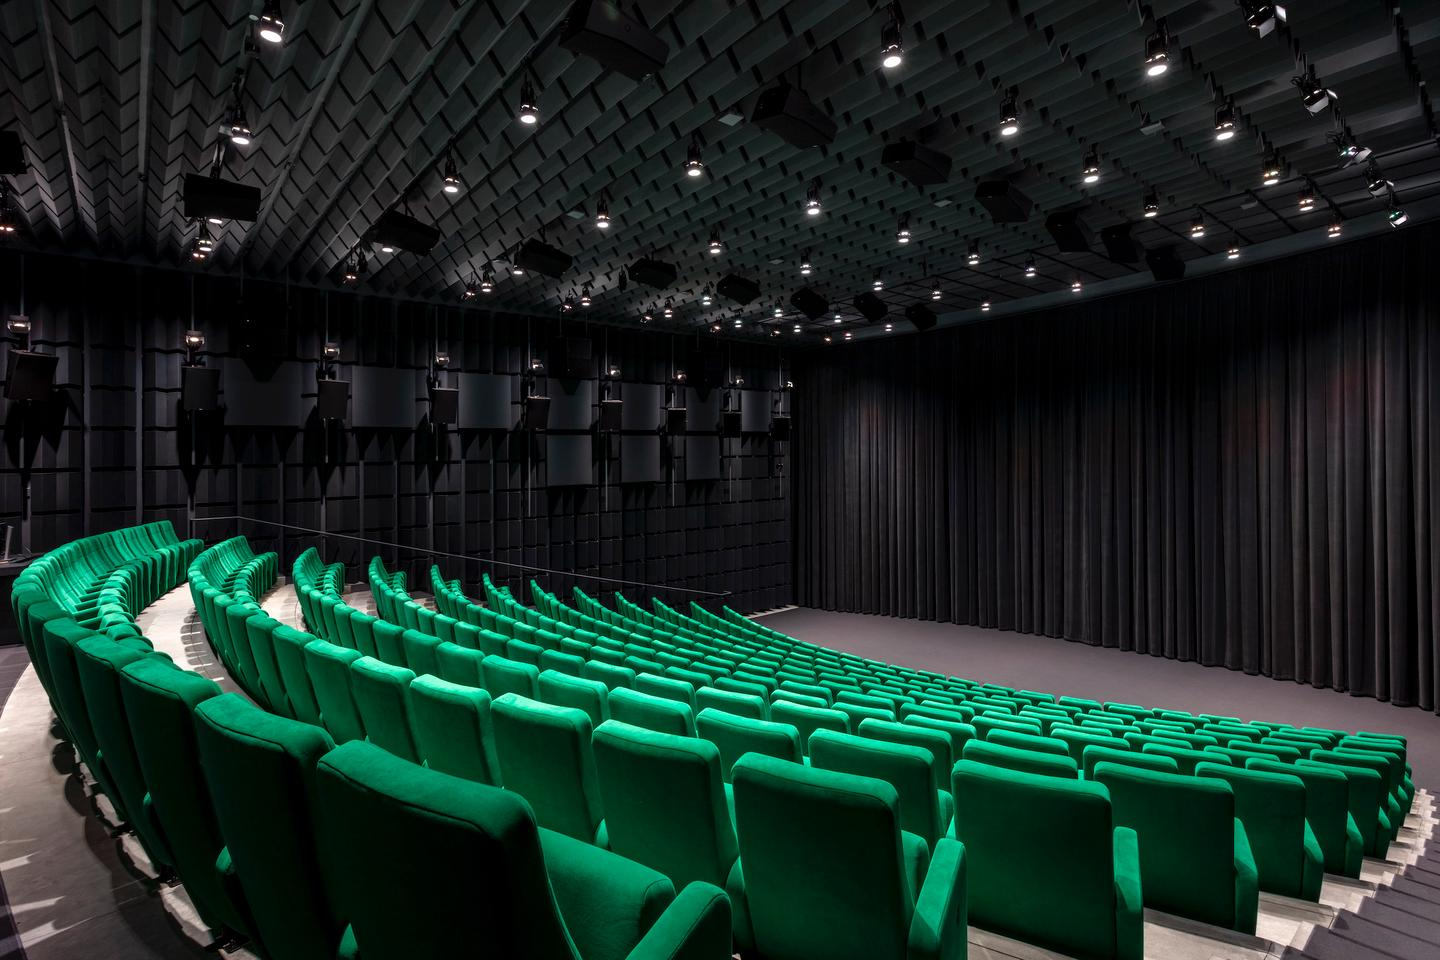 The Academy Museum of Motion Pictures' 288-seat Ted Mann Theater will host screenings